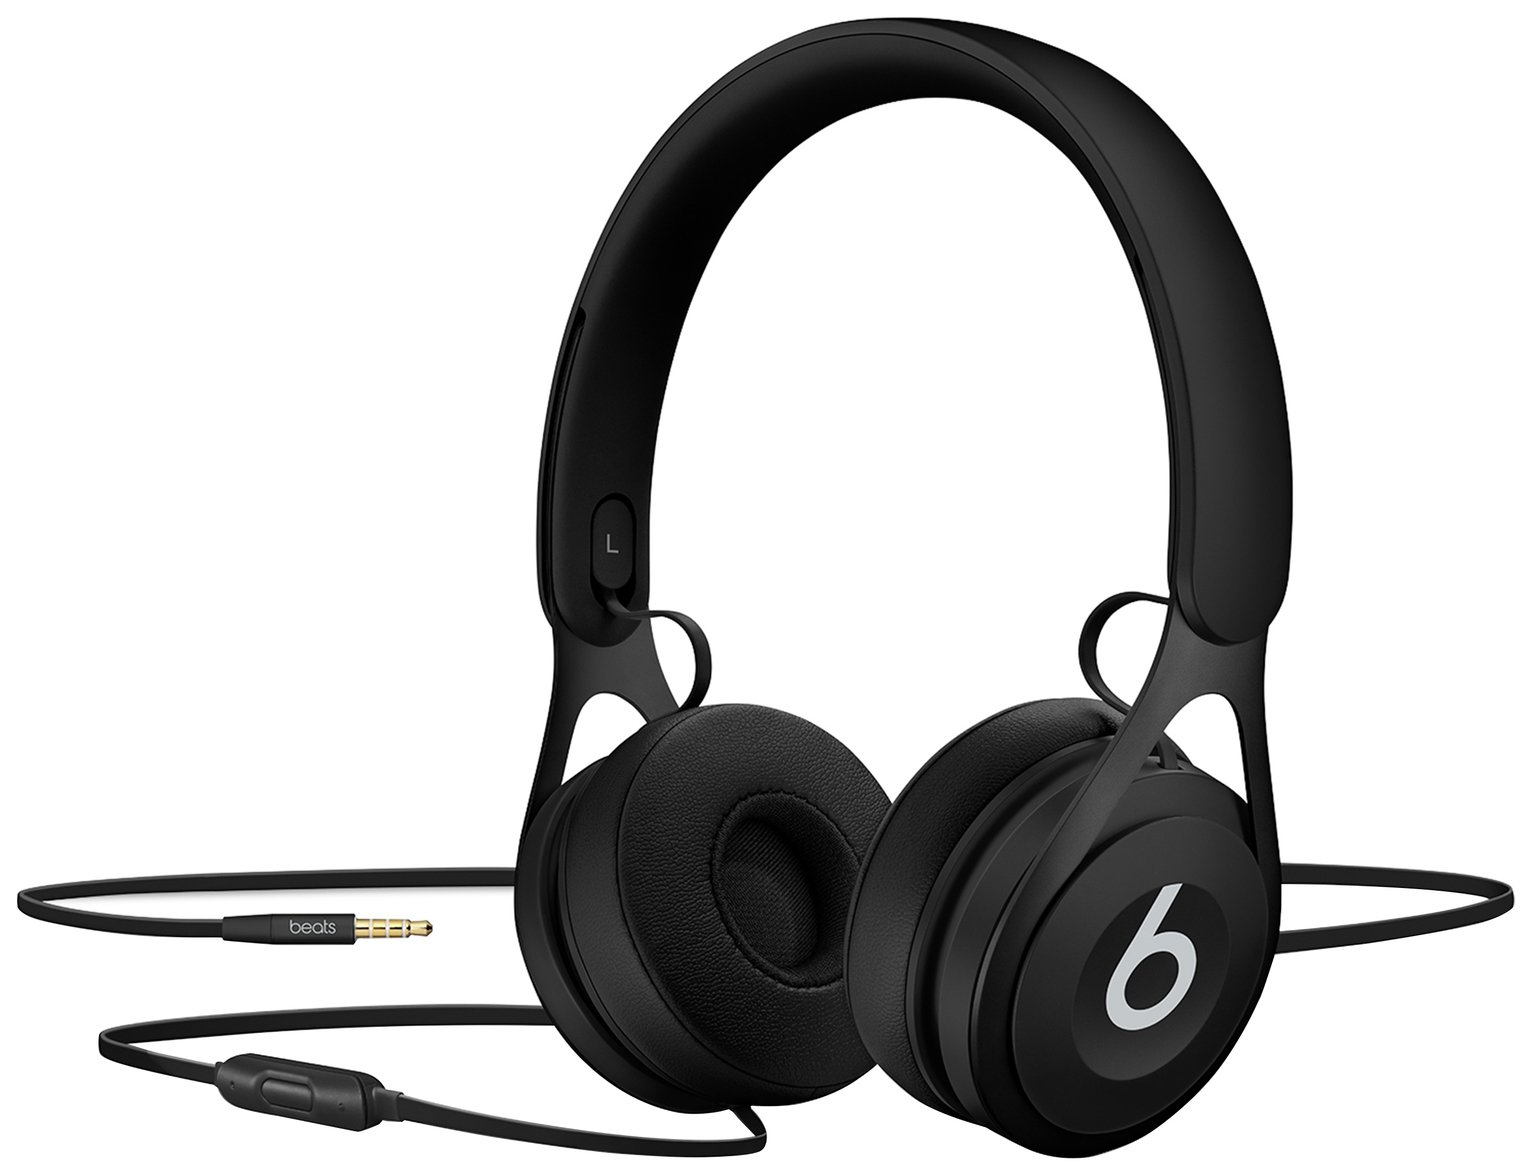 Image of Beats by Dre EP On-Ear Headphones - Black